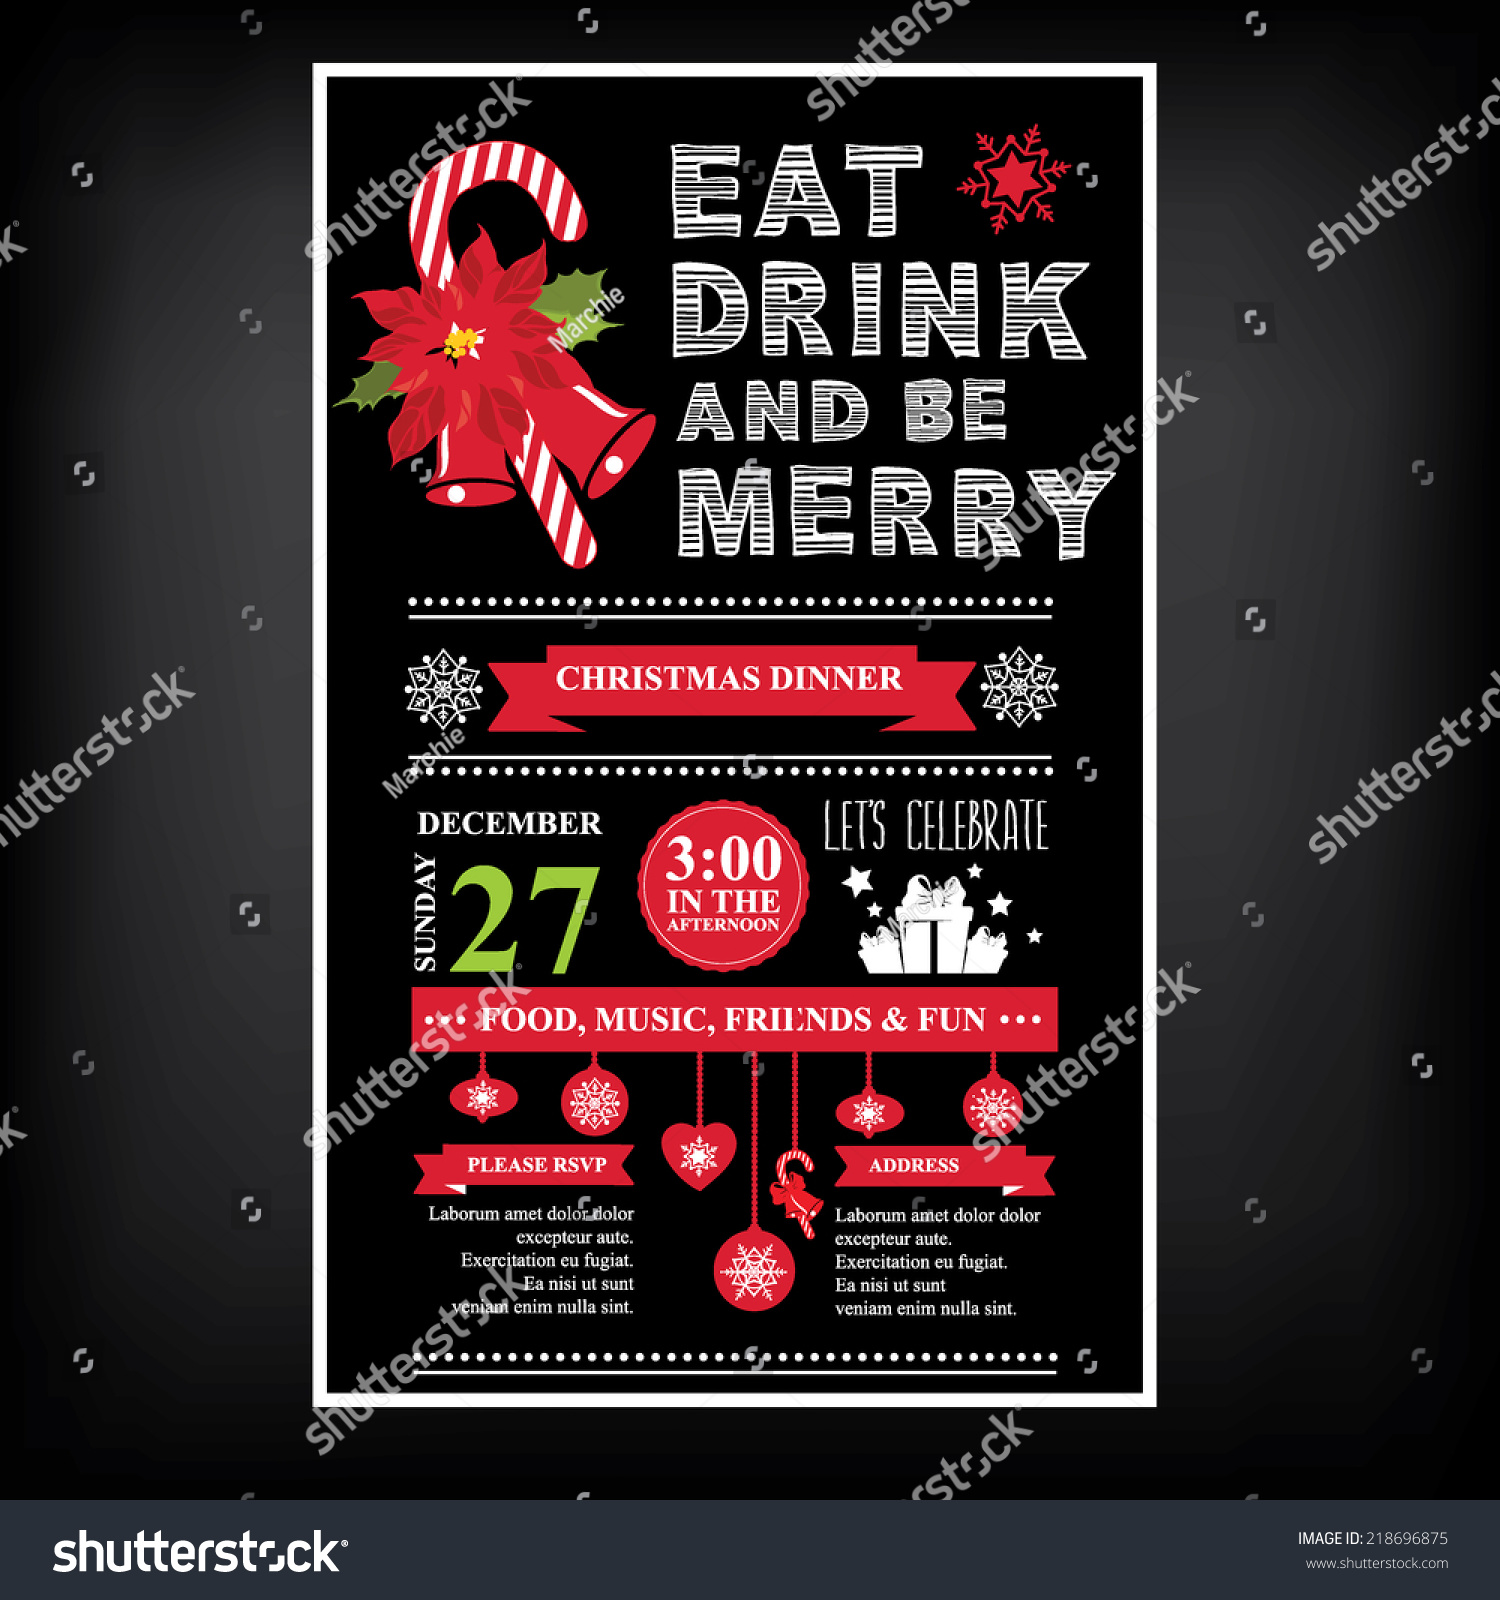 vector christmas party invitation toys holiday stock vector vector christmas party invitation toys holiday background and design banner vector template